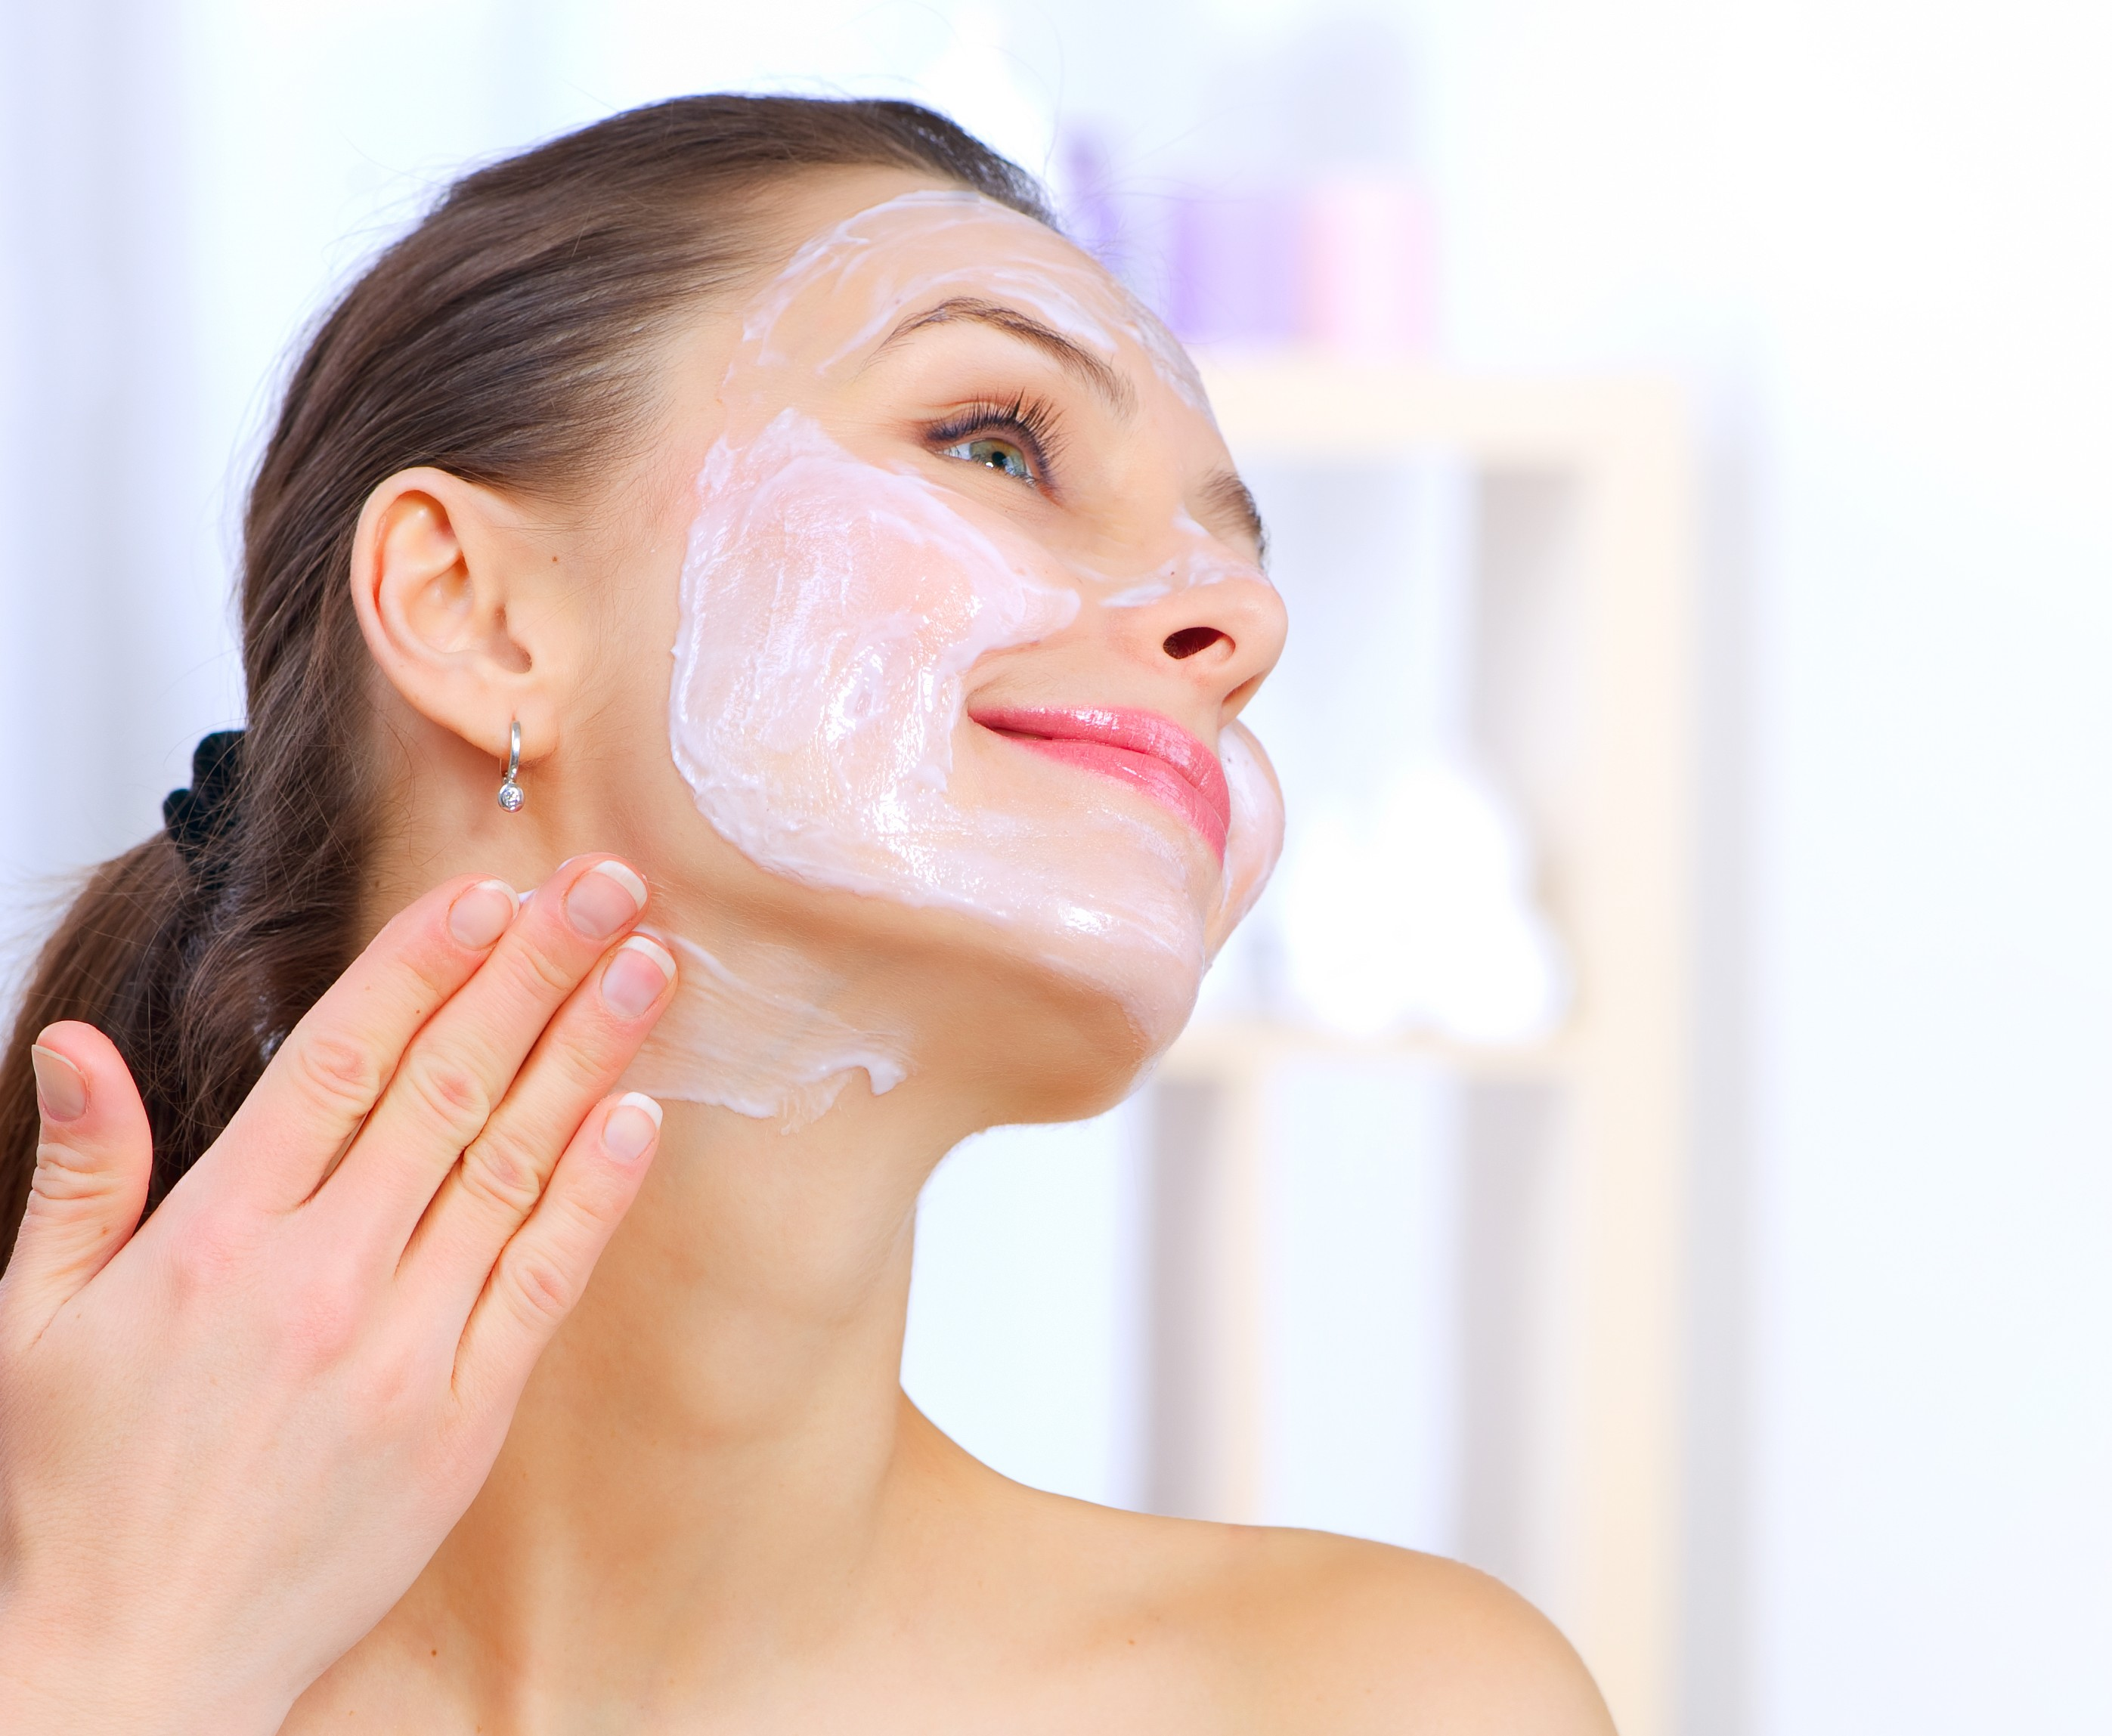 photodune-1898649-beautiful-woman-applying-natural-homemade-facial-mask-l-e1393024482488